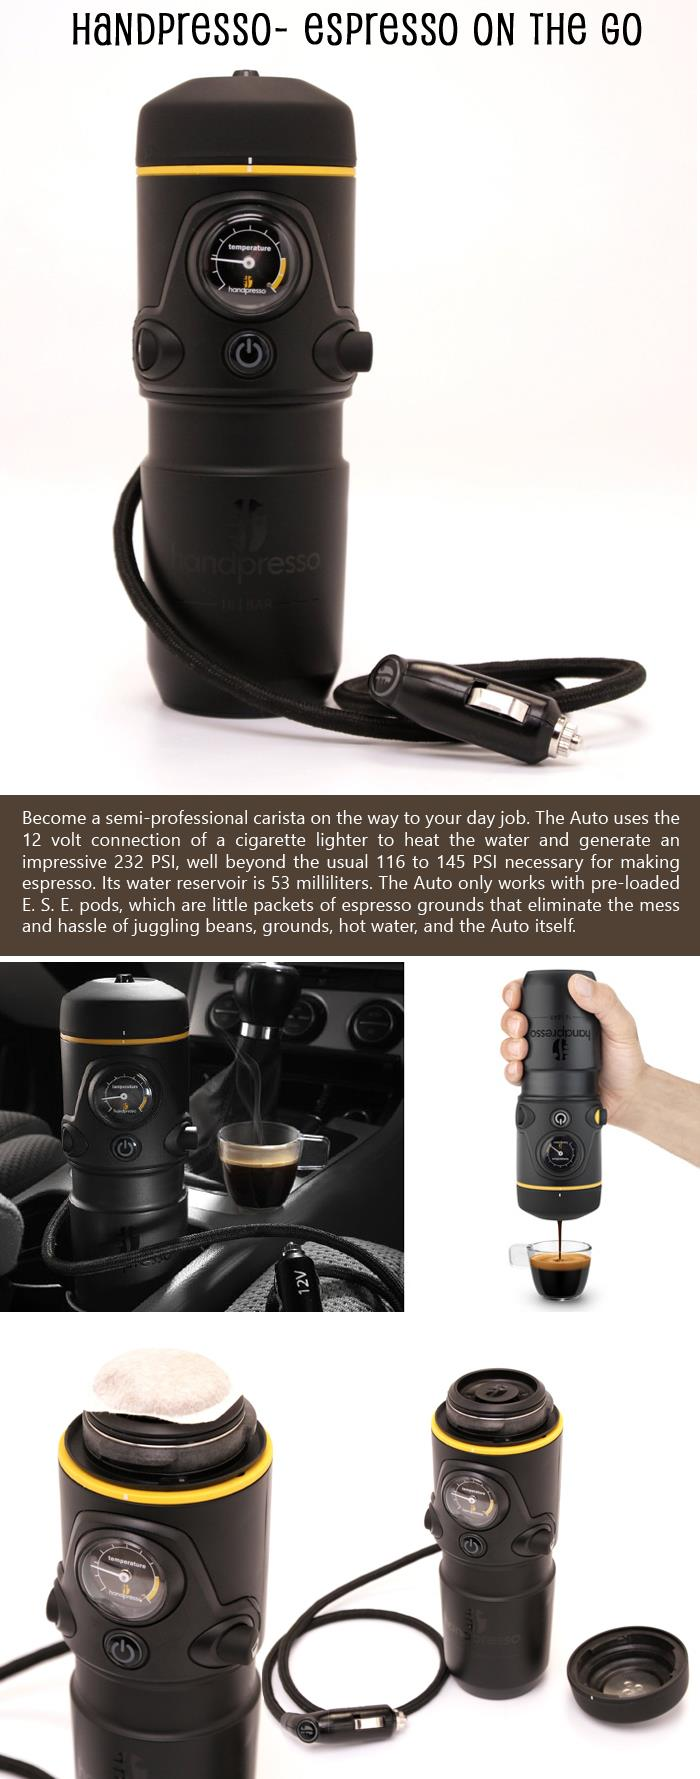 Handpresso- Espresso On The Go